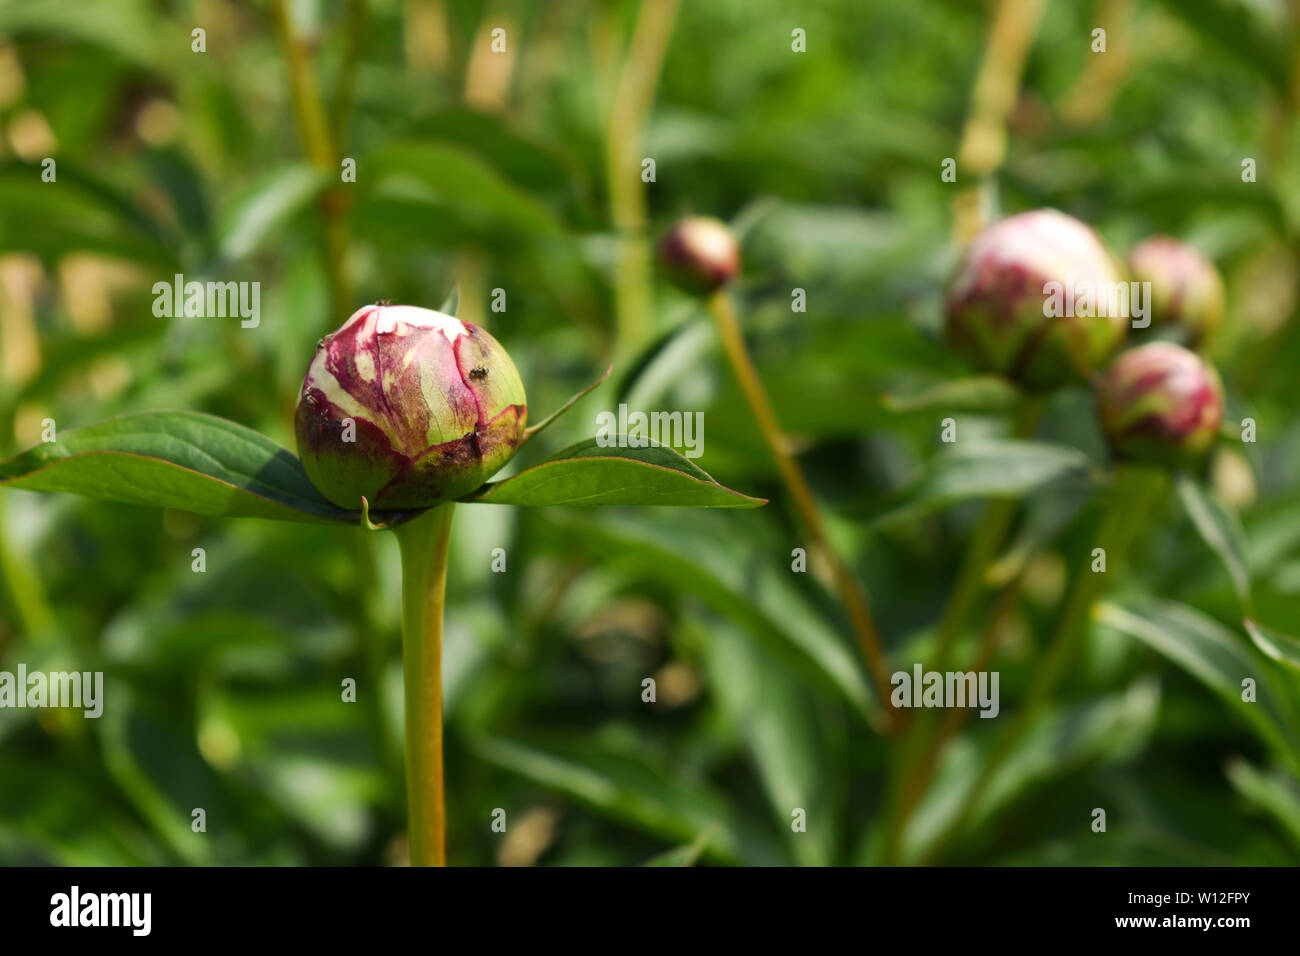 Black tiny ants on white Chrysanthemum flower bud with green floral background - Stock Image